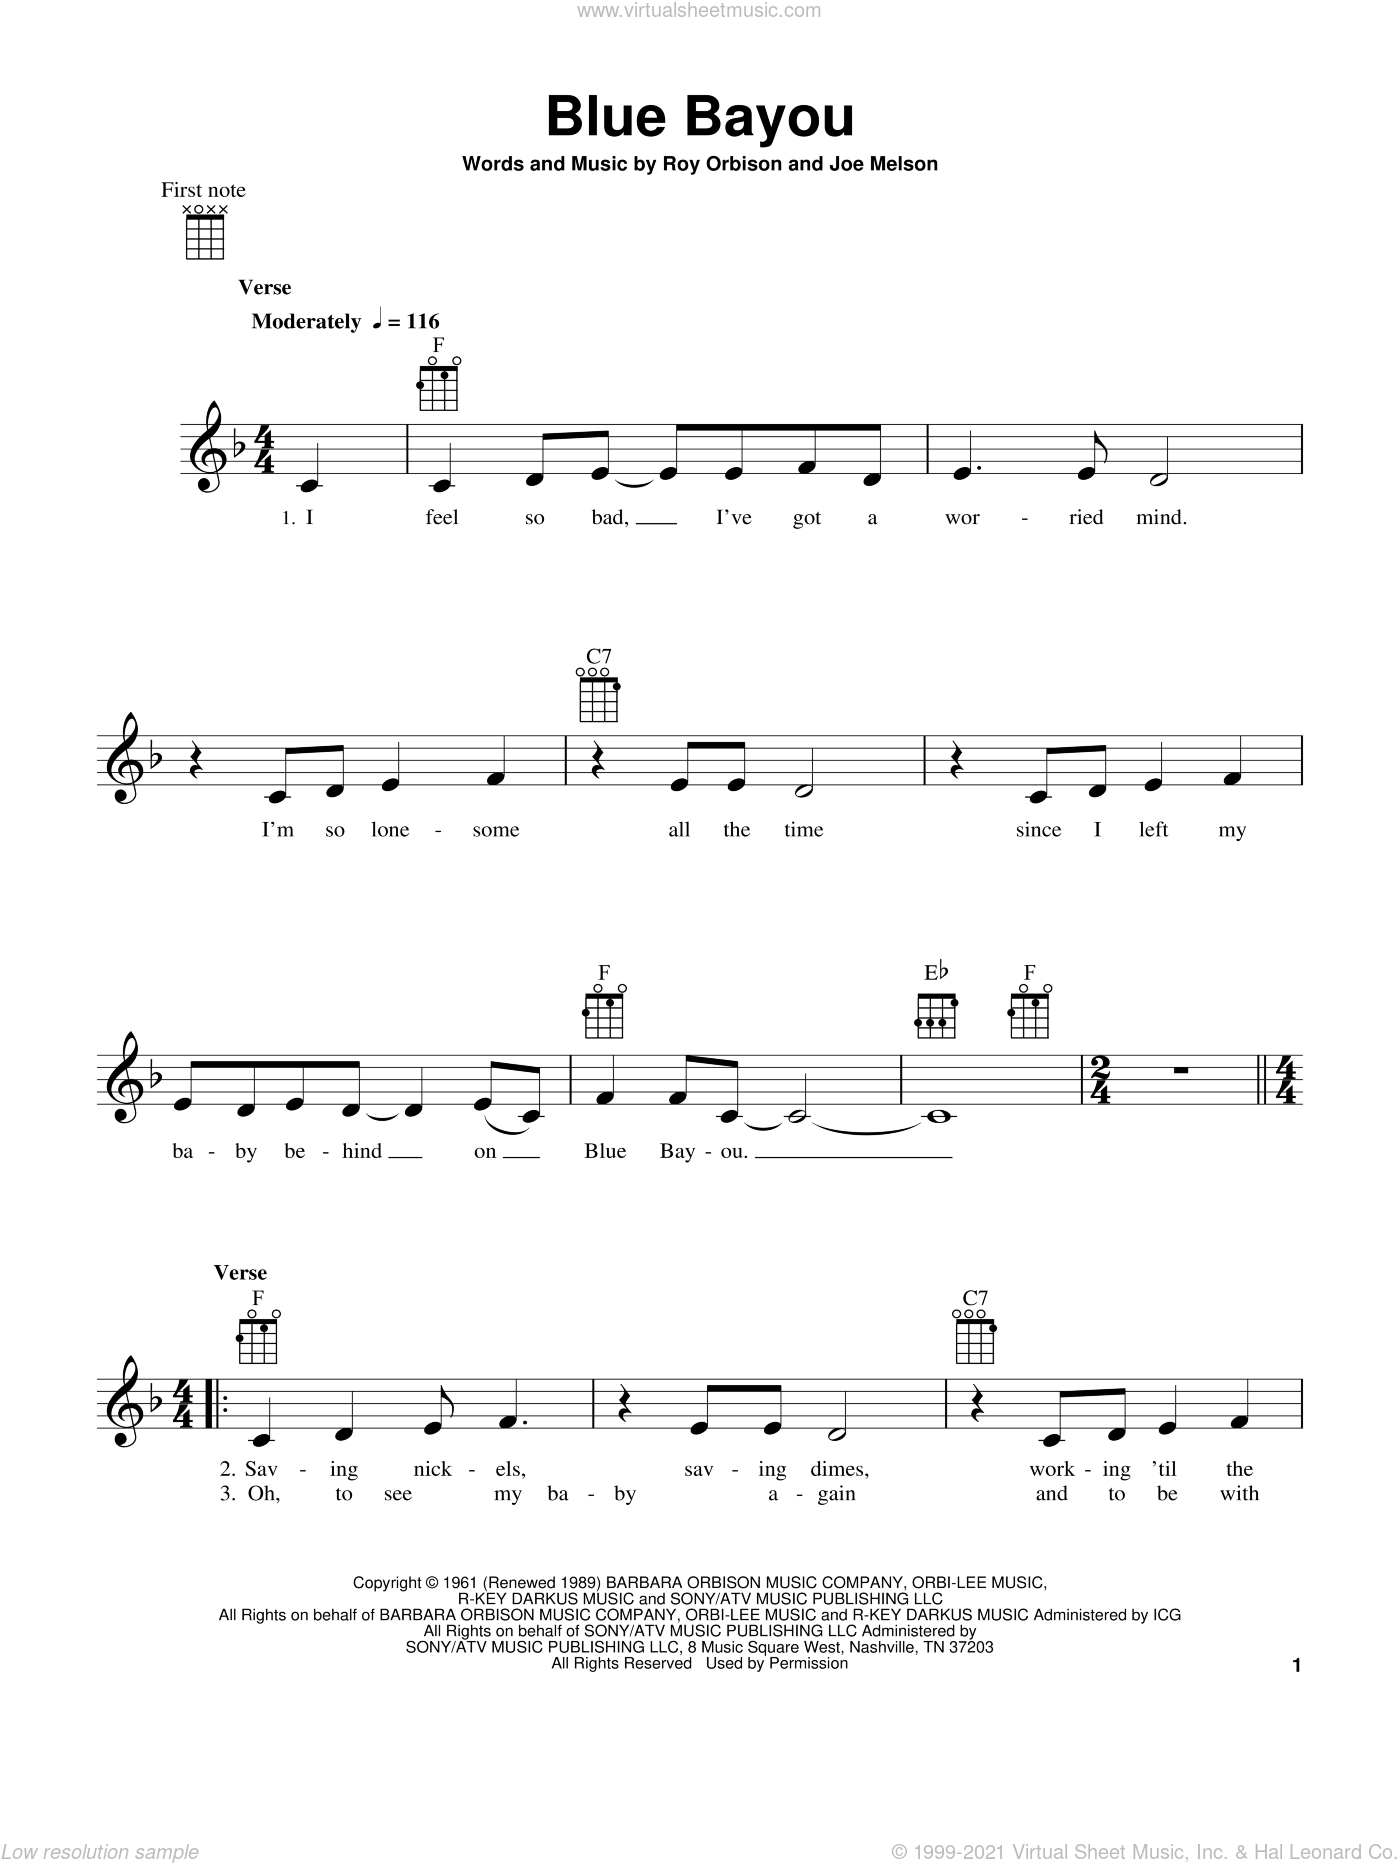 Blue Bayou sheet music for ukulele by Roy Orbison, Linda Ronstadt and Joe Melson, intermediate skill level